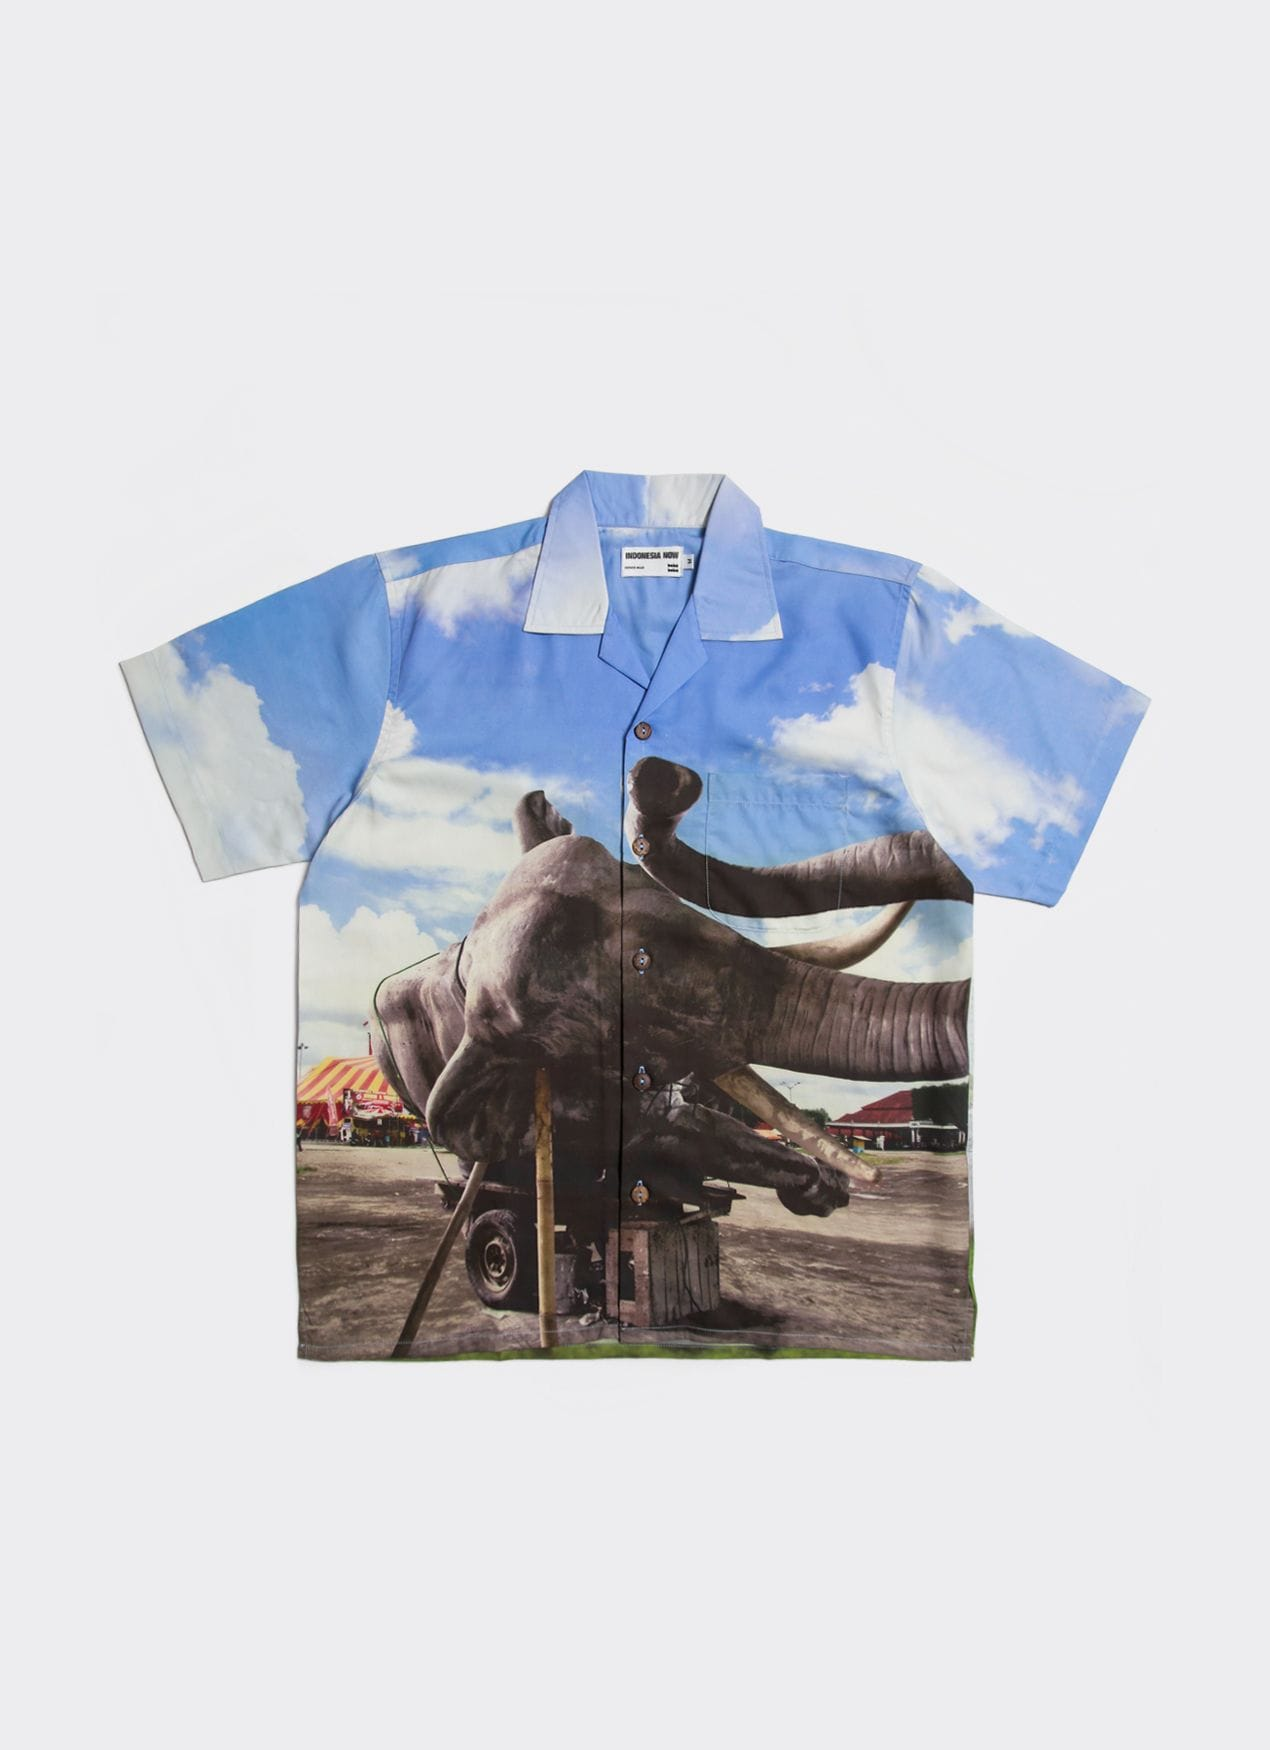 Wimo Ambala Bayang Blue Sleeping Elephant in the Axis of Yogyakarta Shirt